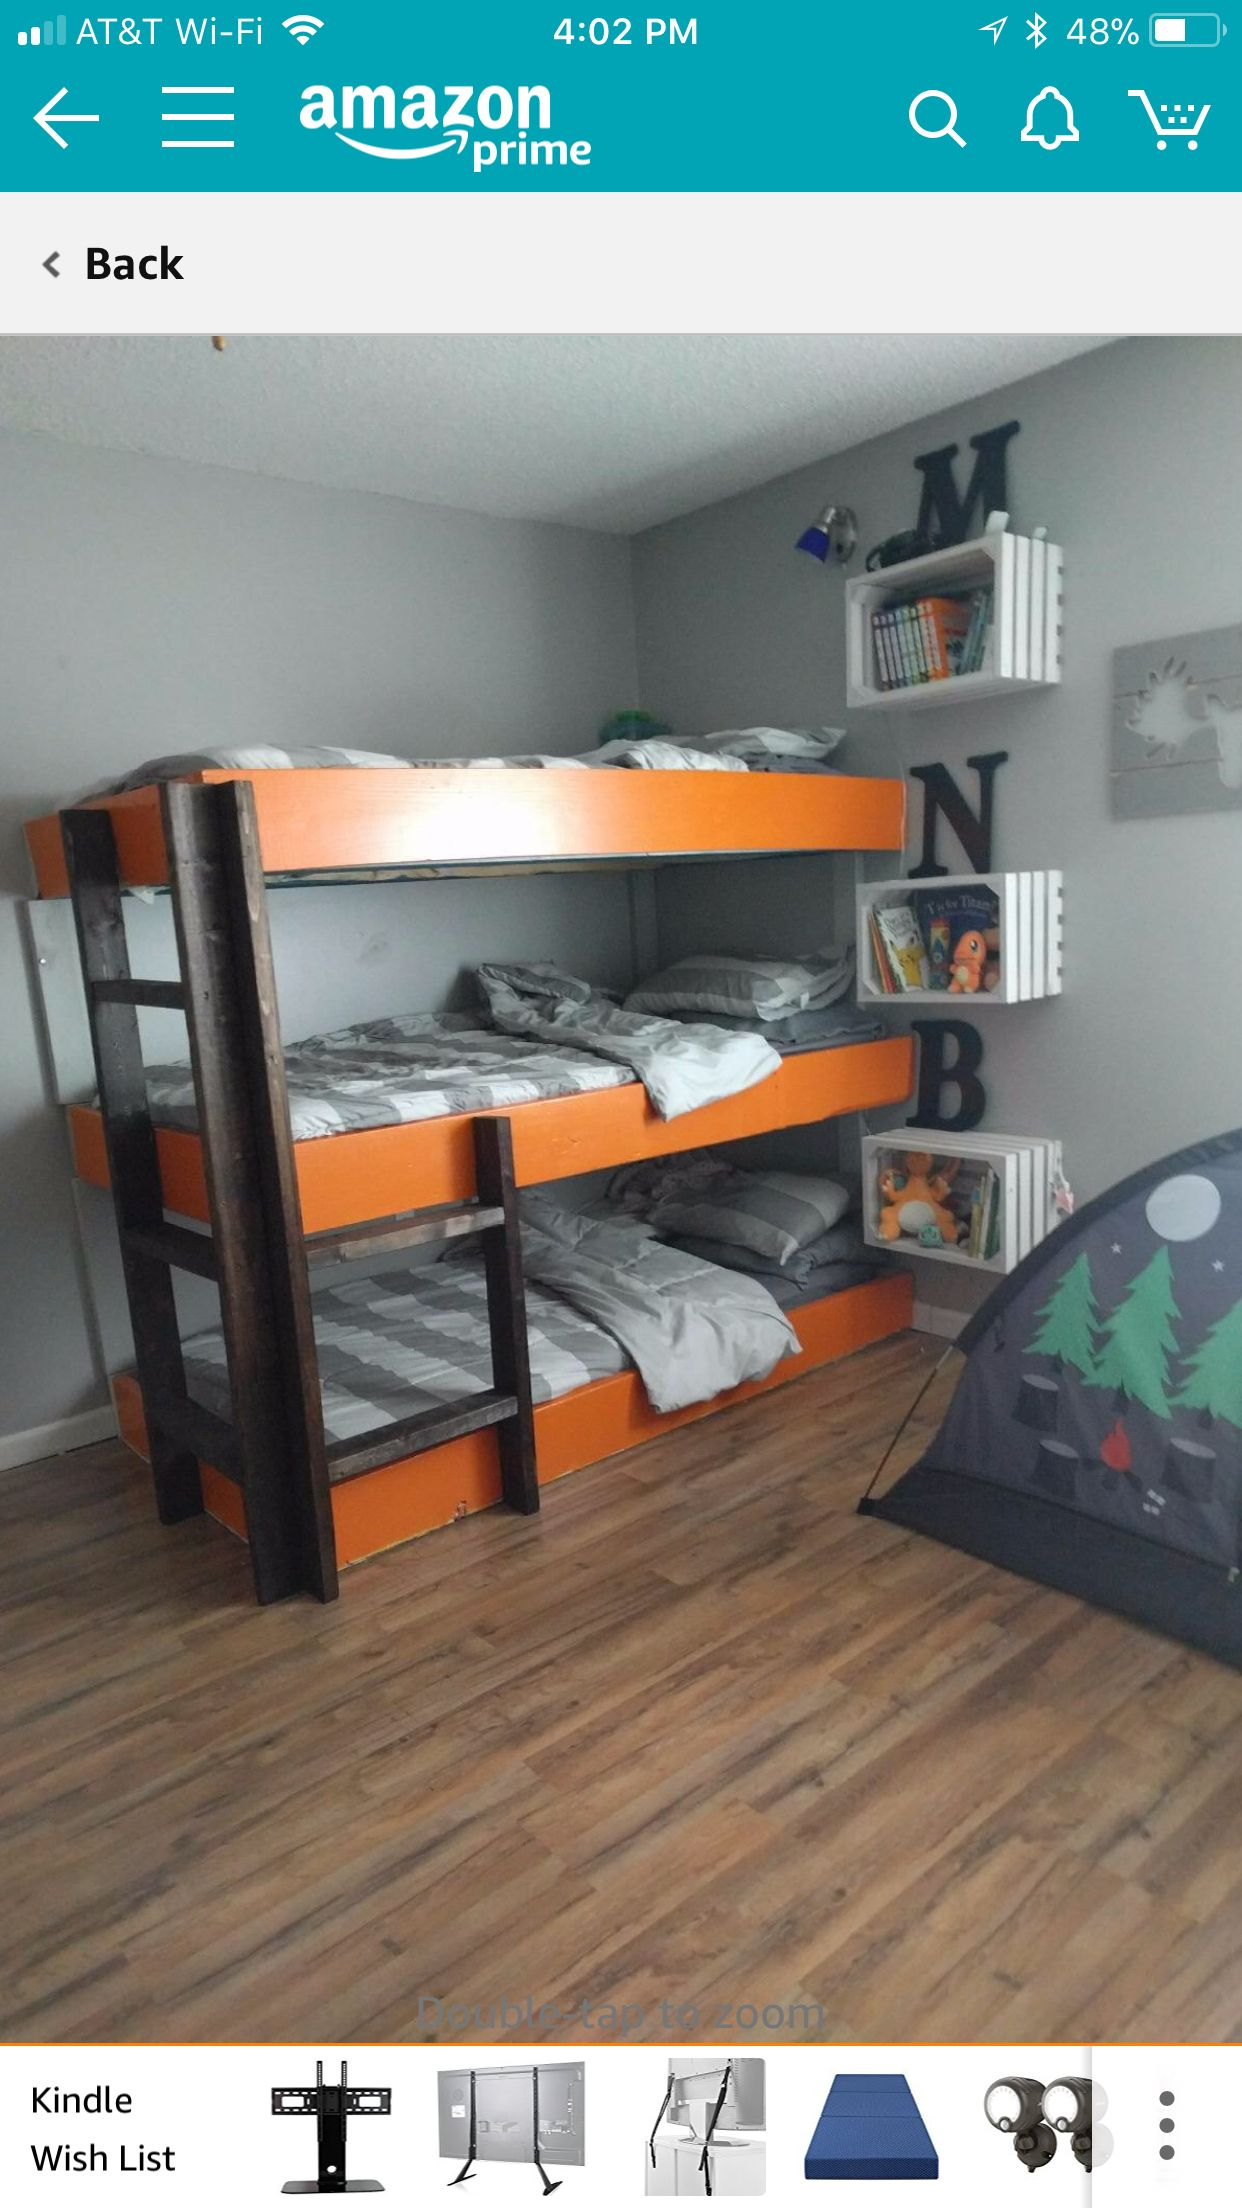 Triple Bunk Beds With Crate Nightstands Attached To The Wall Bunk